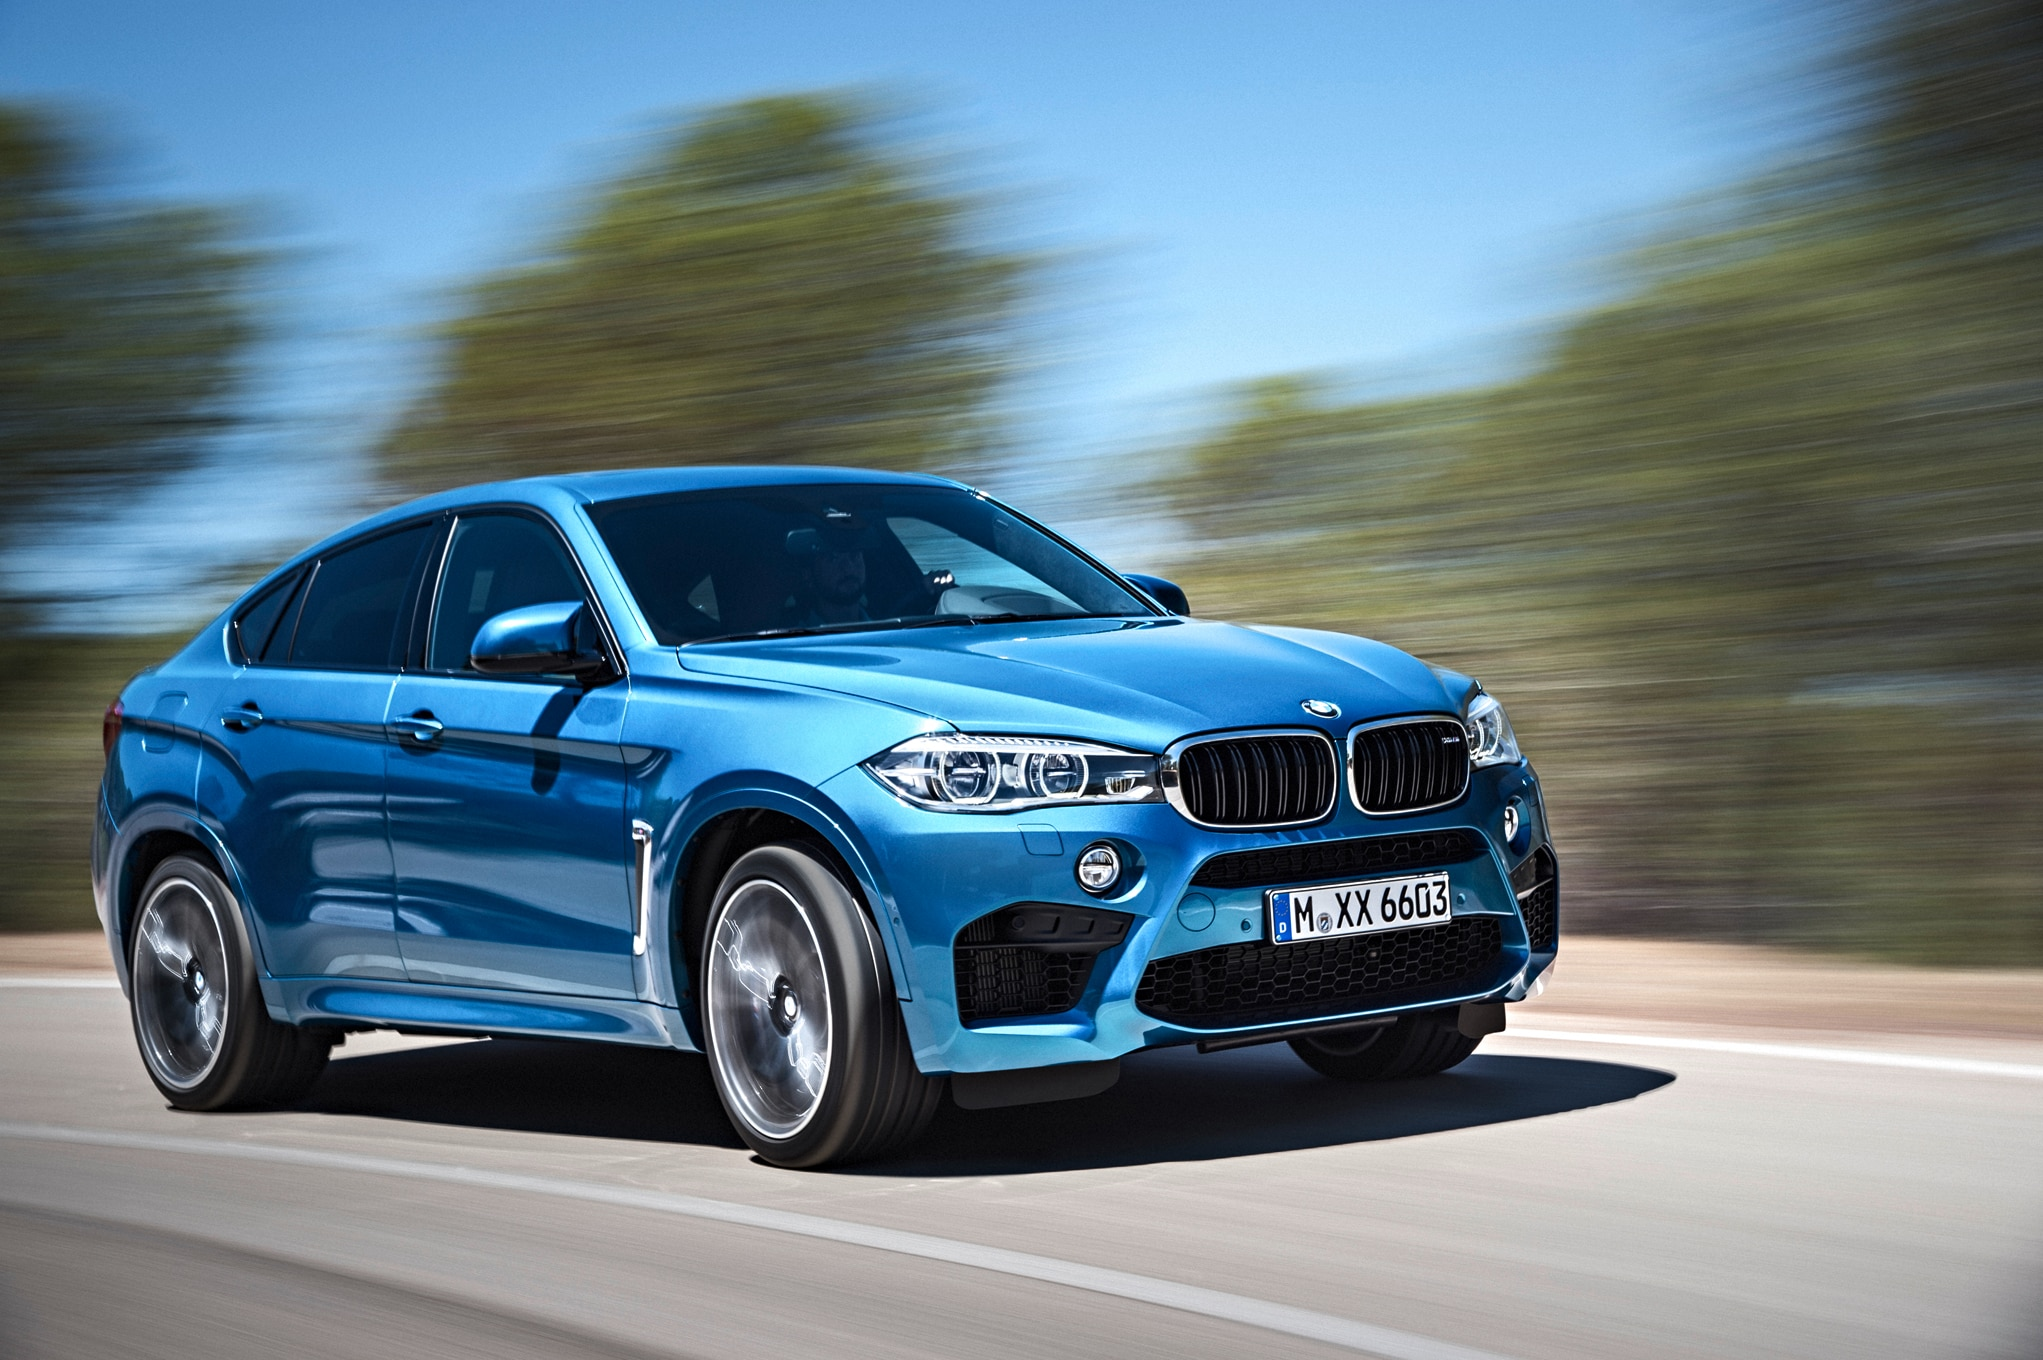 Bmw X6 M Takes On The Mercedes Amg Gle63 S Coupe Head 2 Alfa Romeo 166 Wiring Diagram Show More